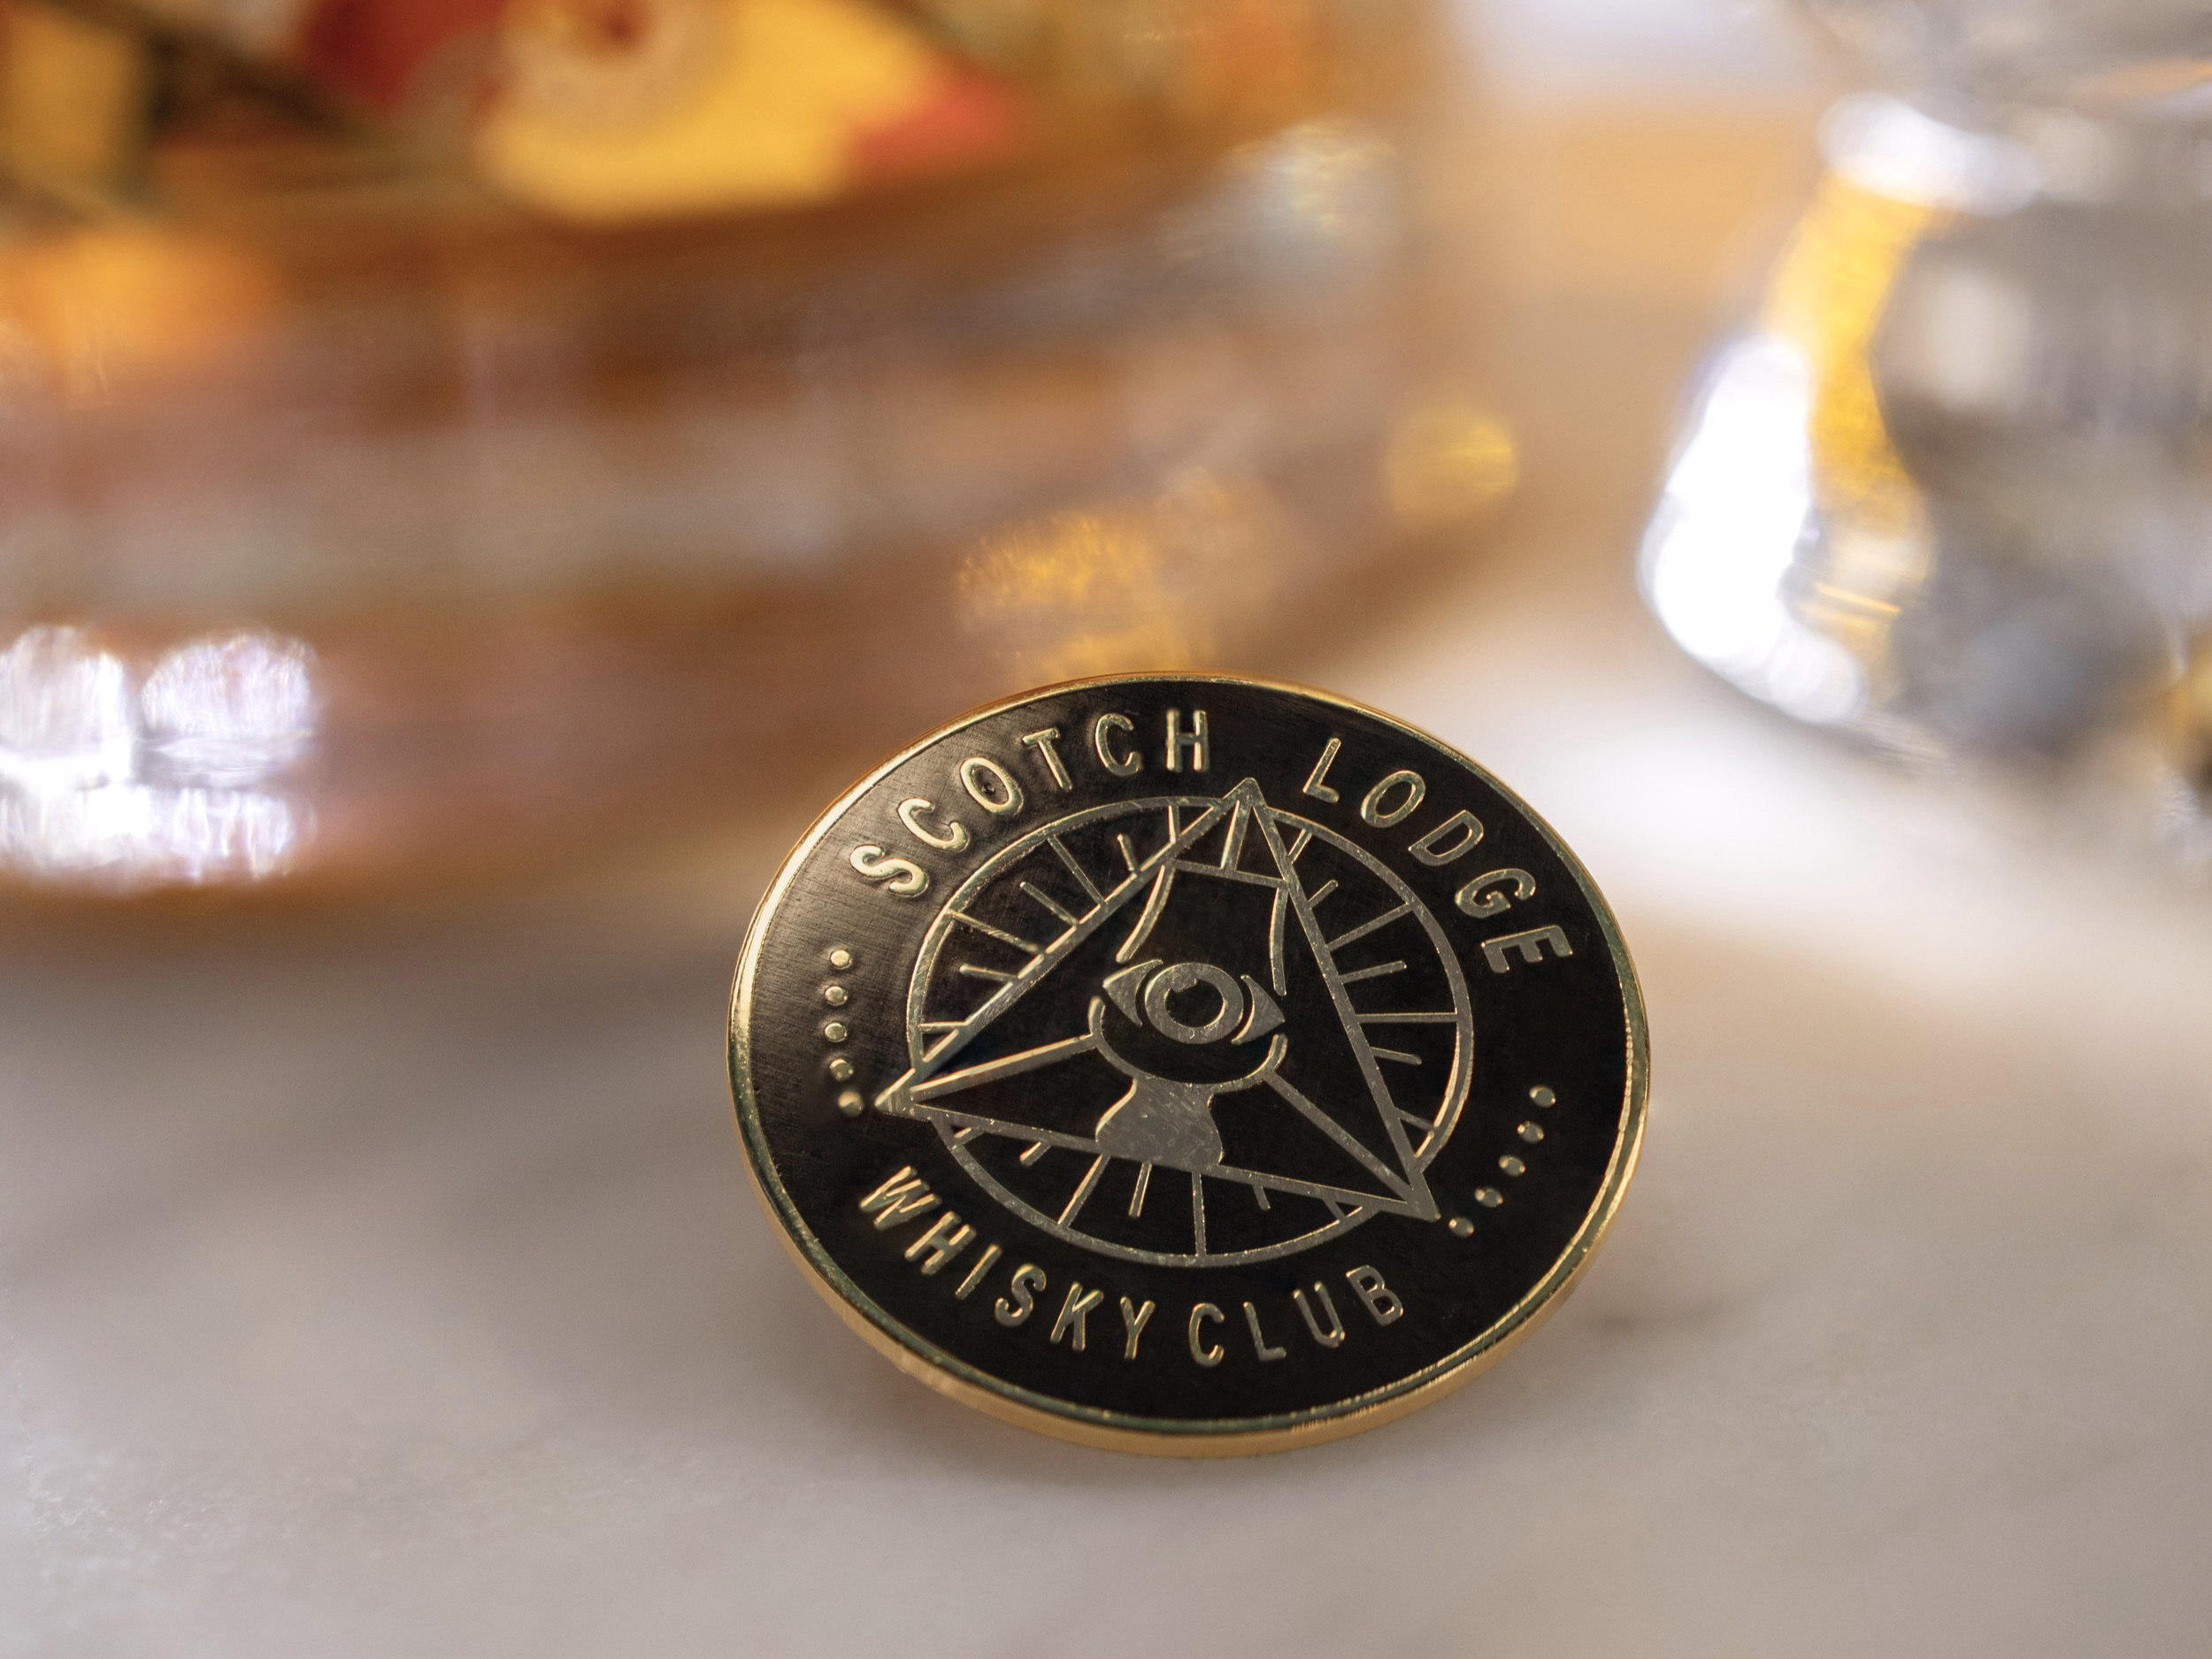 WHISKY CLUB - Discover new spirits and to share our common love for all things whisky!